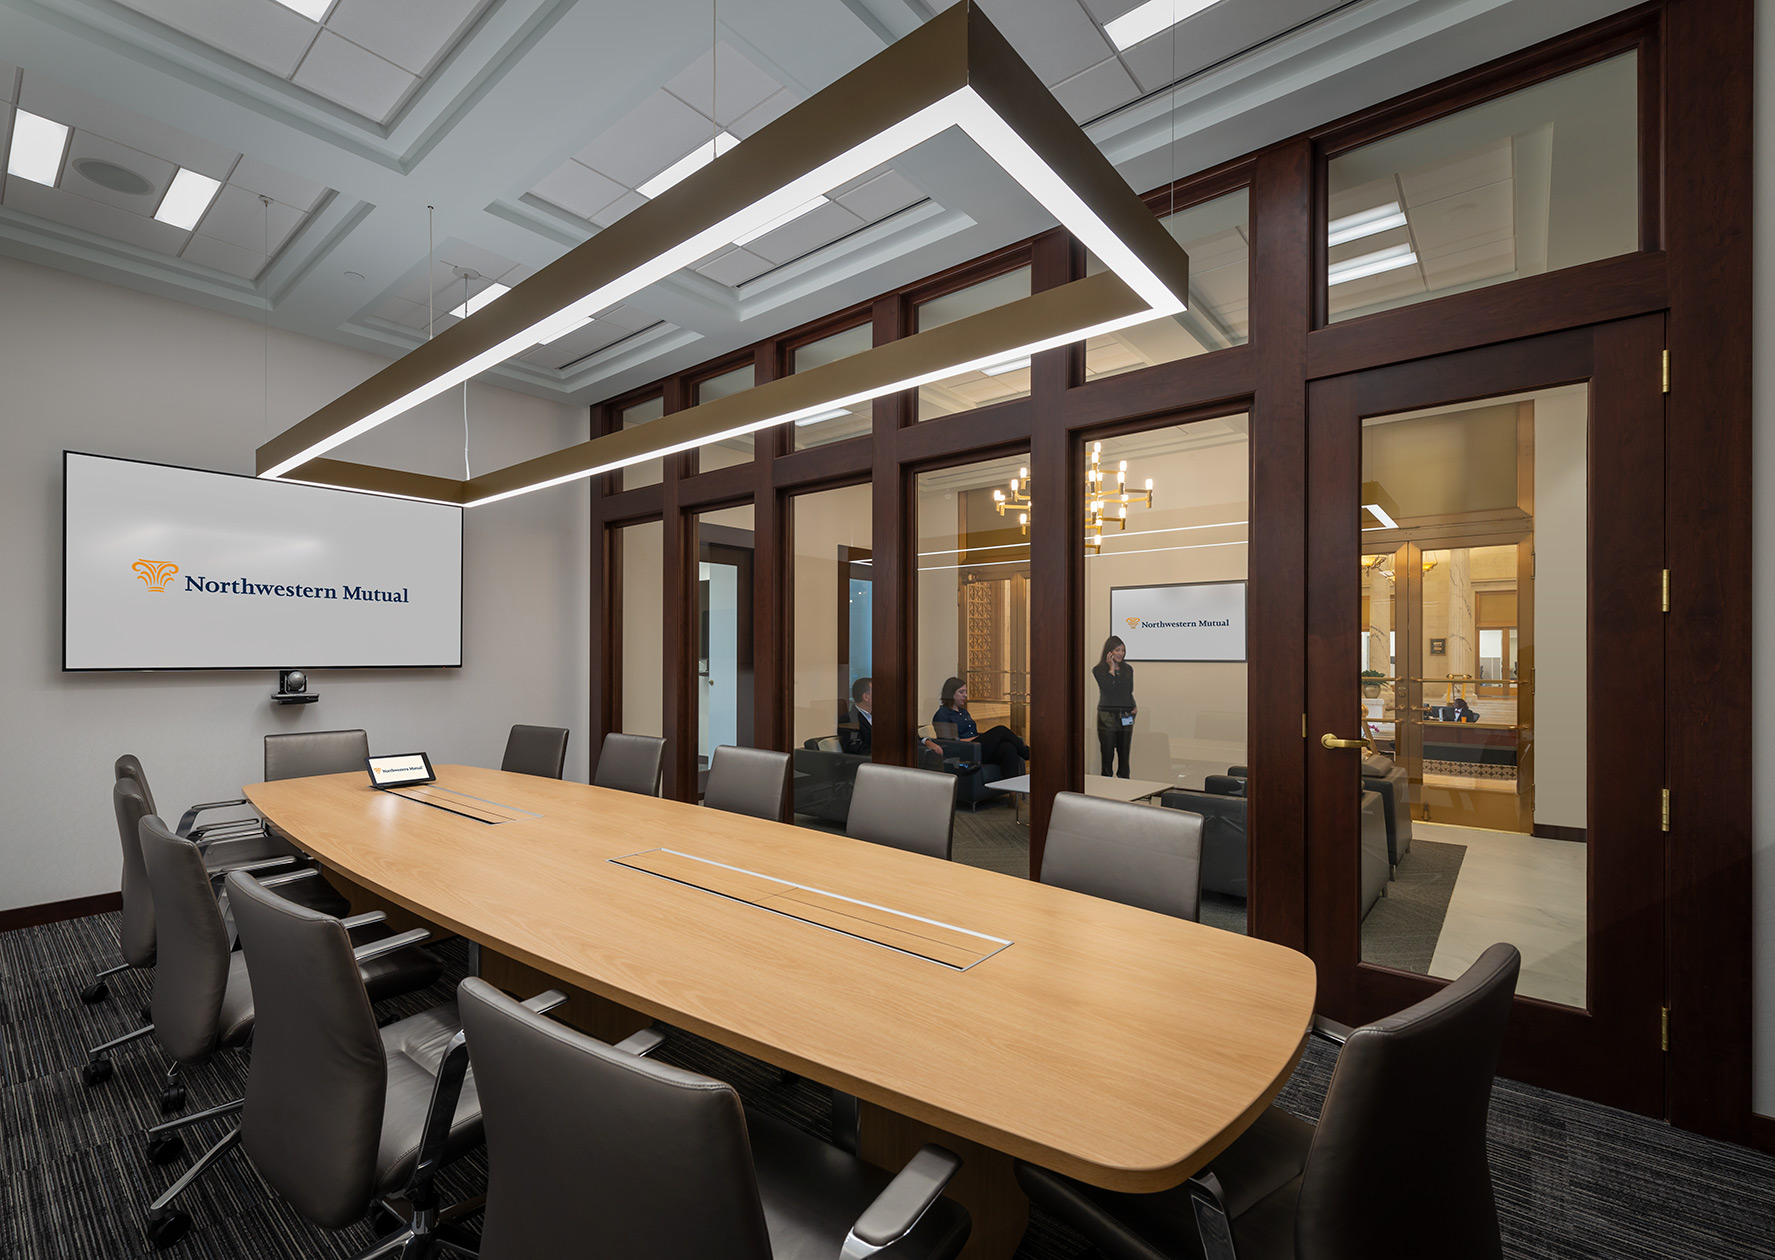 Northwestern Mutual conference room